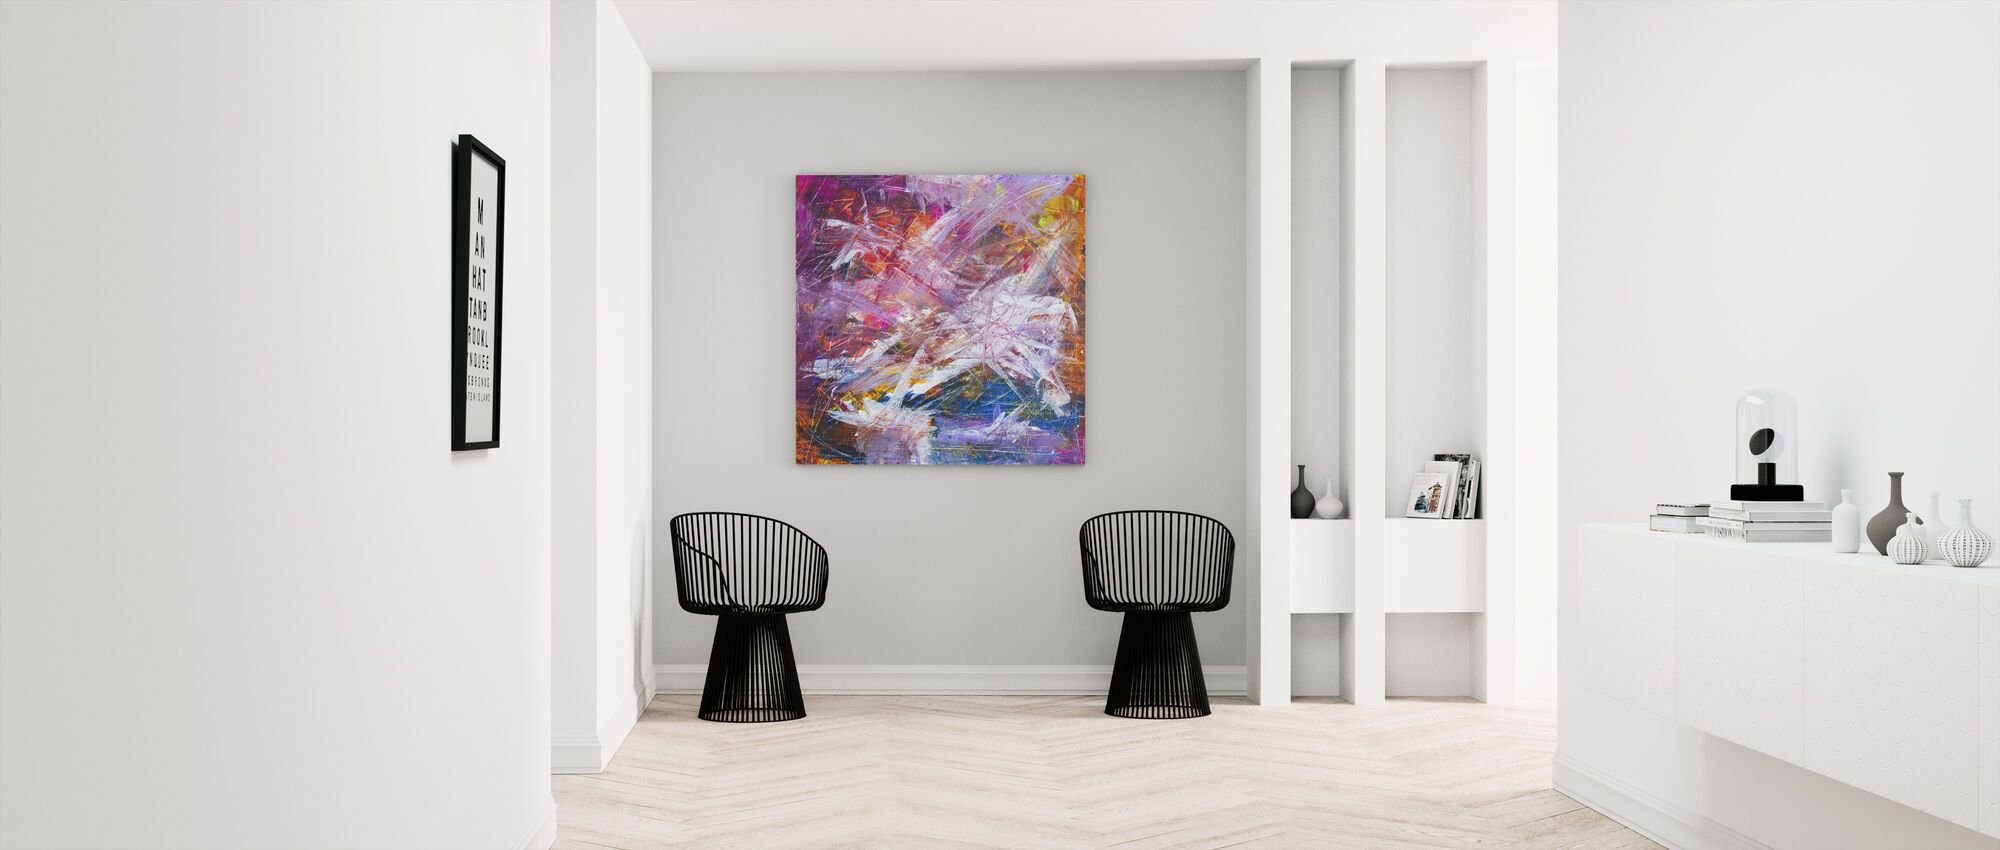 Abstract Painting - Canvas print - Hallway